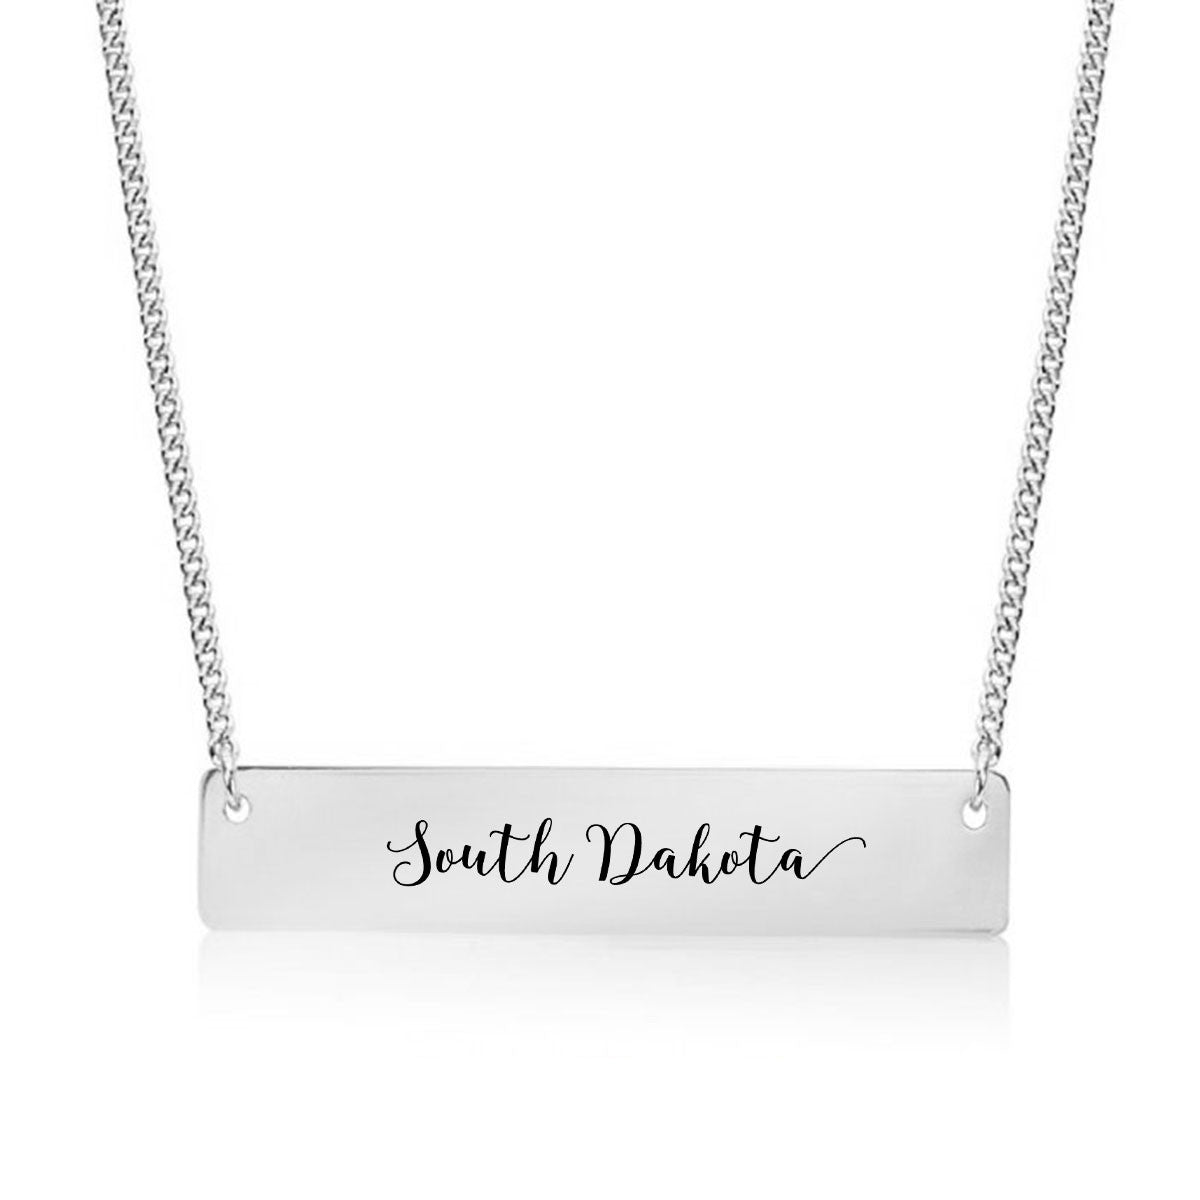 South Dakota Gold / Silver Bar Necklace